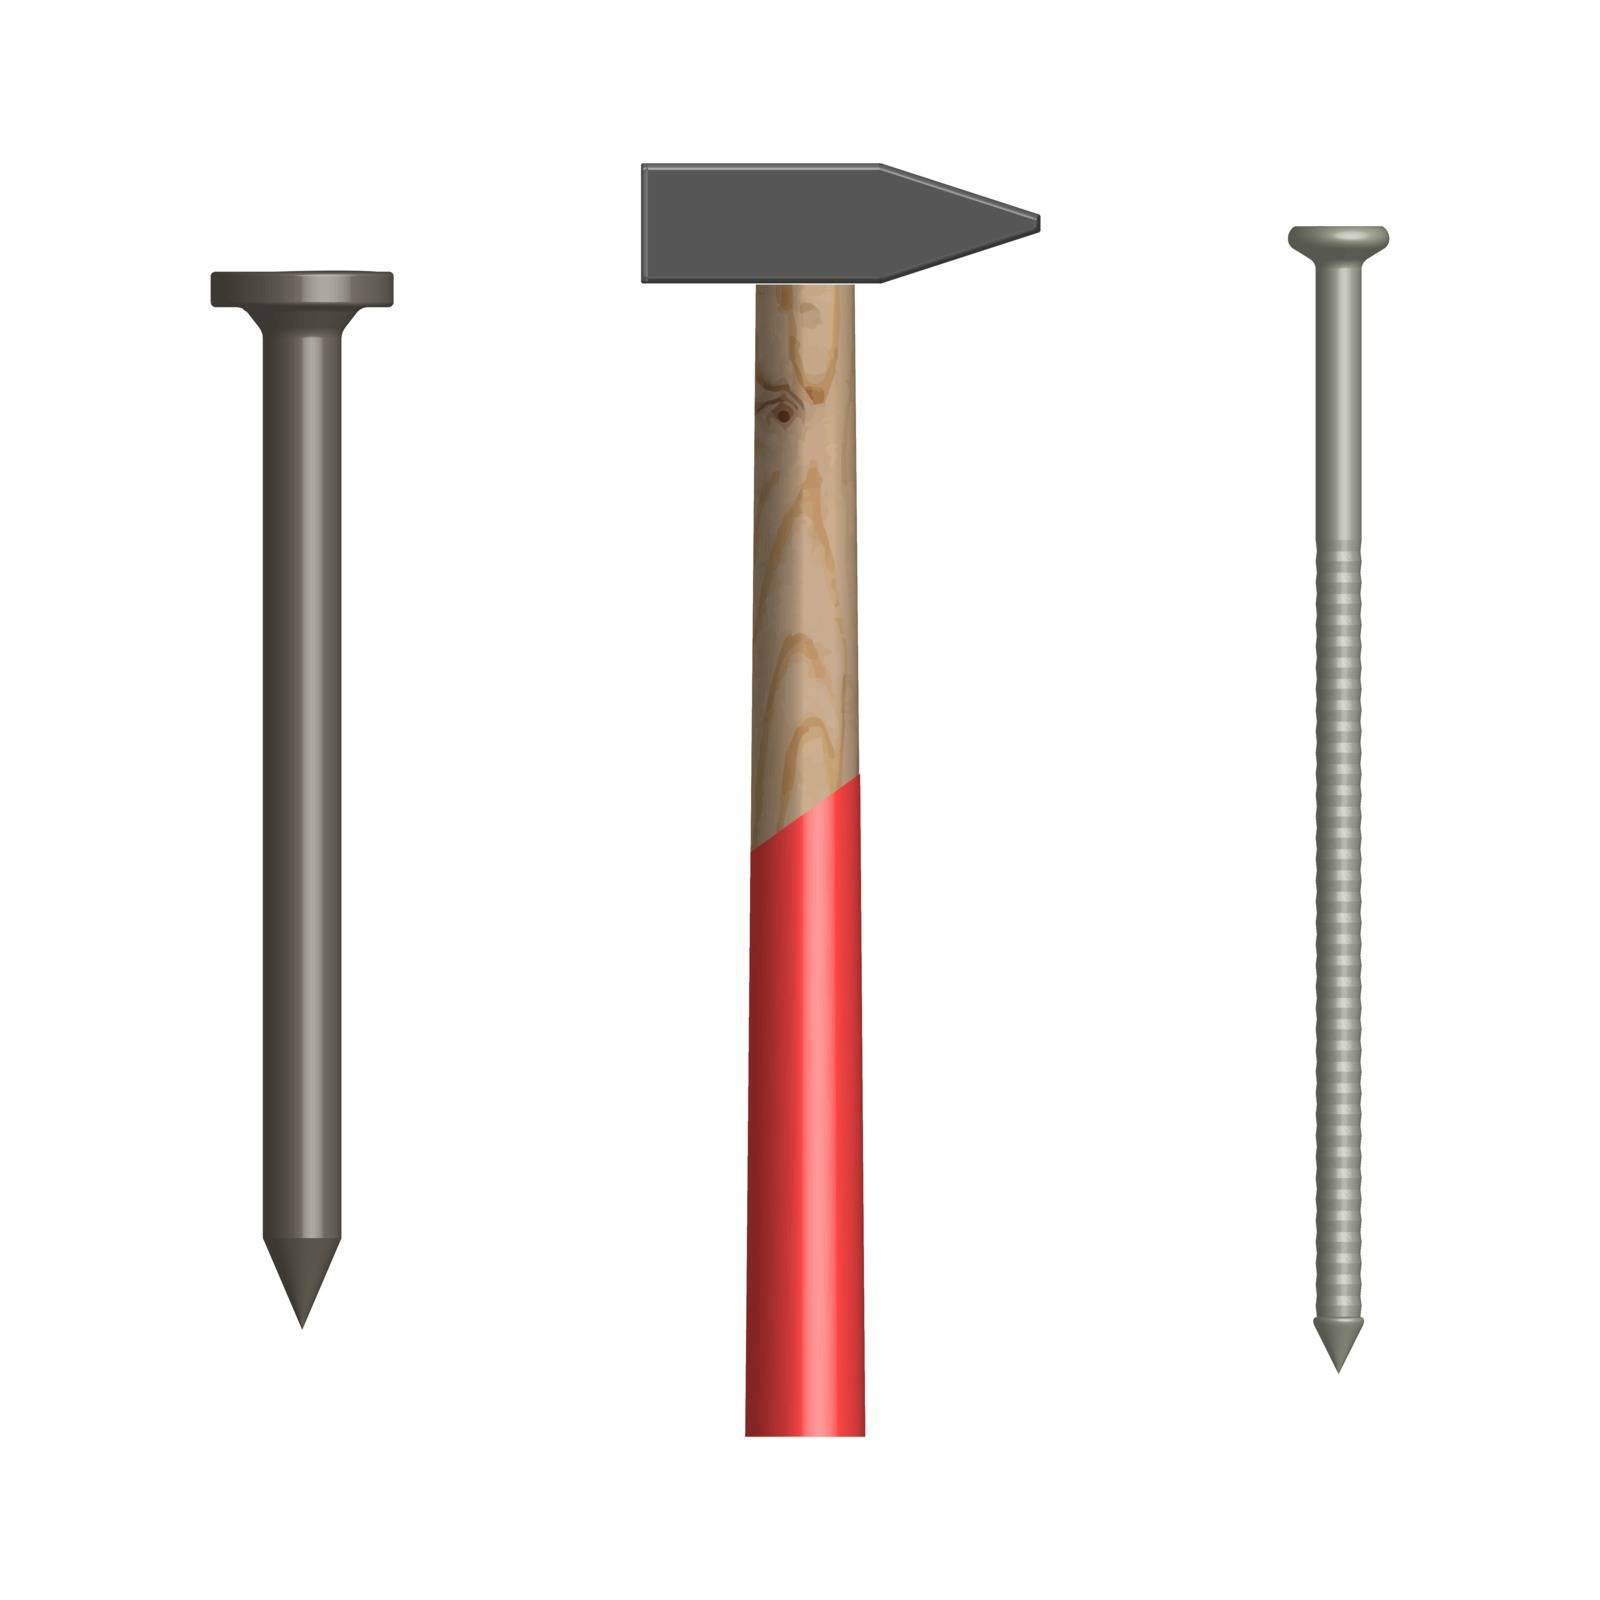 Hammer and nails isolated on white background. Elements design of the working tool and fasteners. Front view, vector illustration.